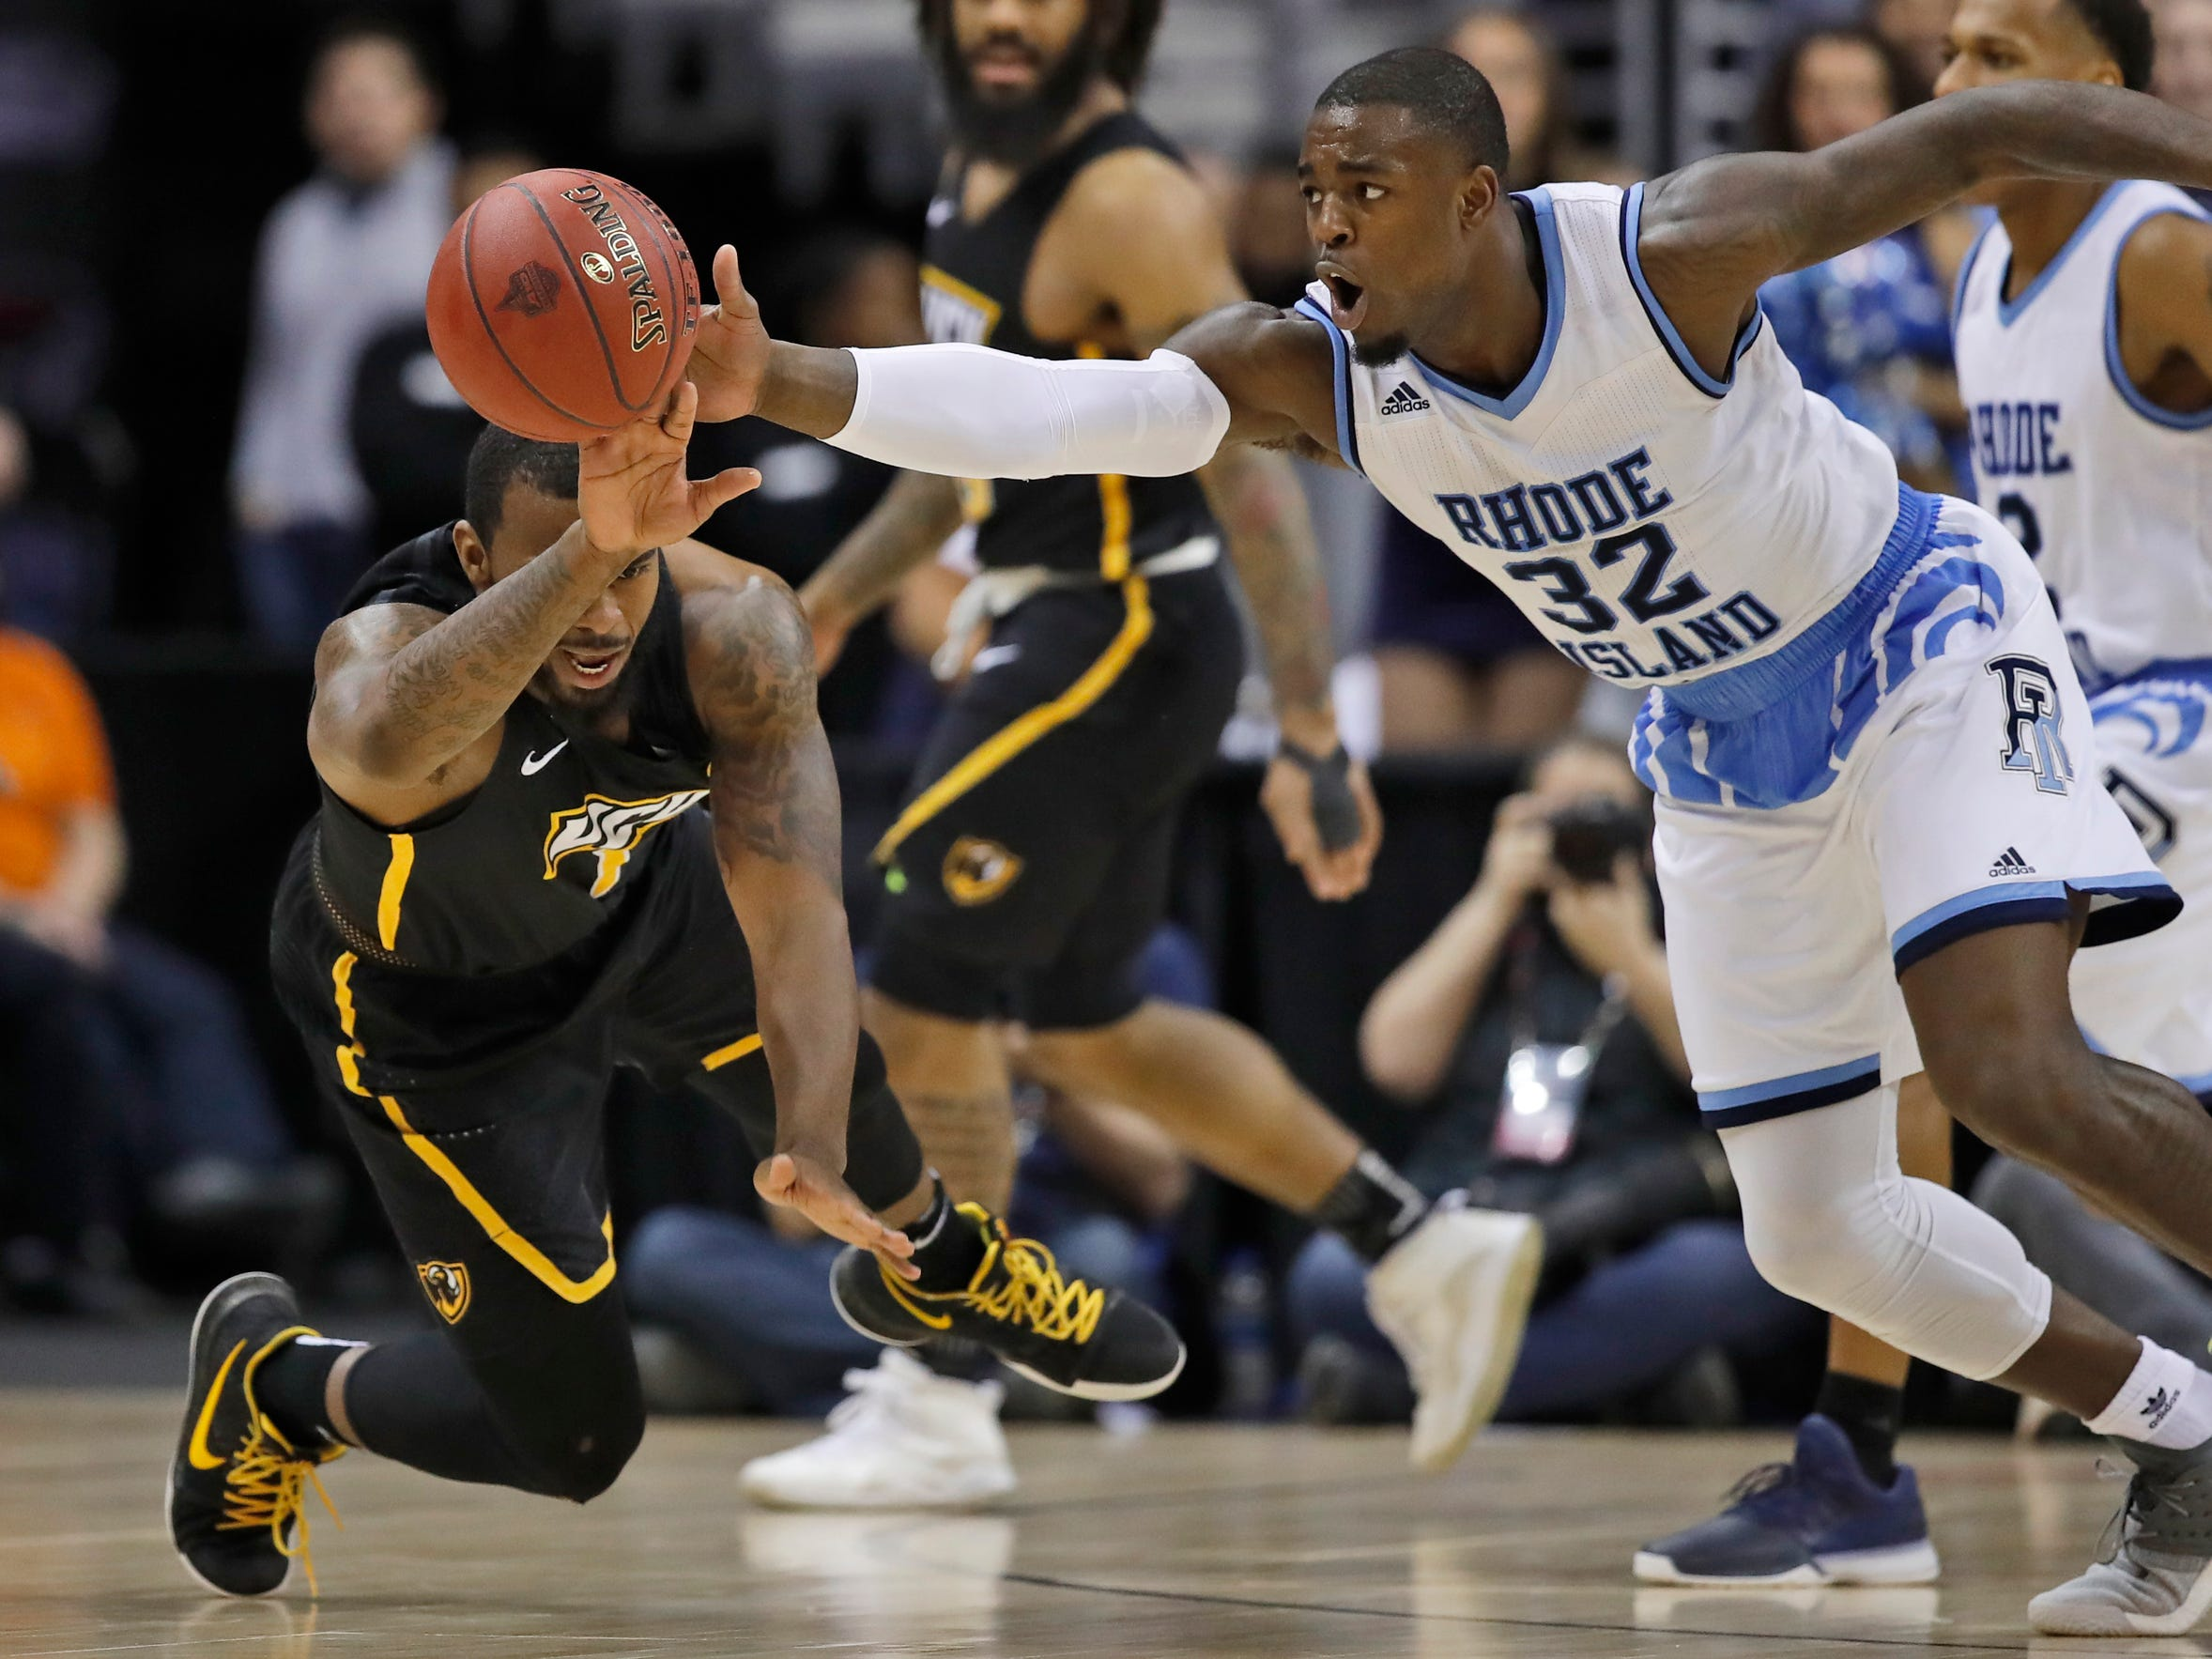 Rhode Island guard Jarvis Garrett, left, loses the ball after he was fouled by Rhode Island guard Jared Terrell, right, during the first half of an NCAA college basketball quarterfinal game in the Atlantic 10 Conference tournament, Friday, March 9, 2018.